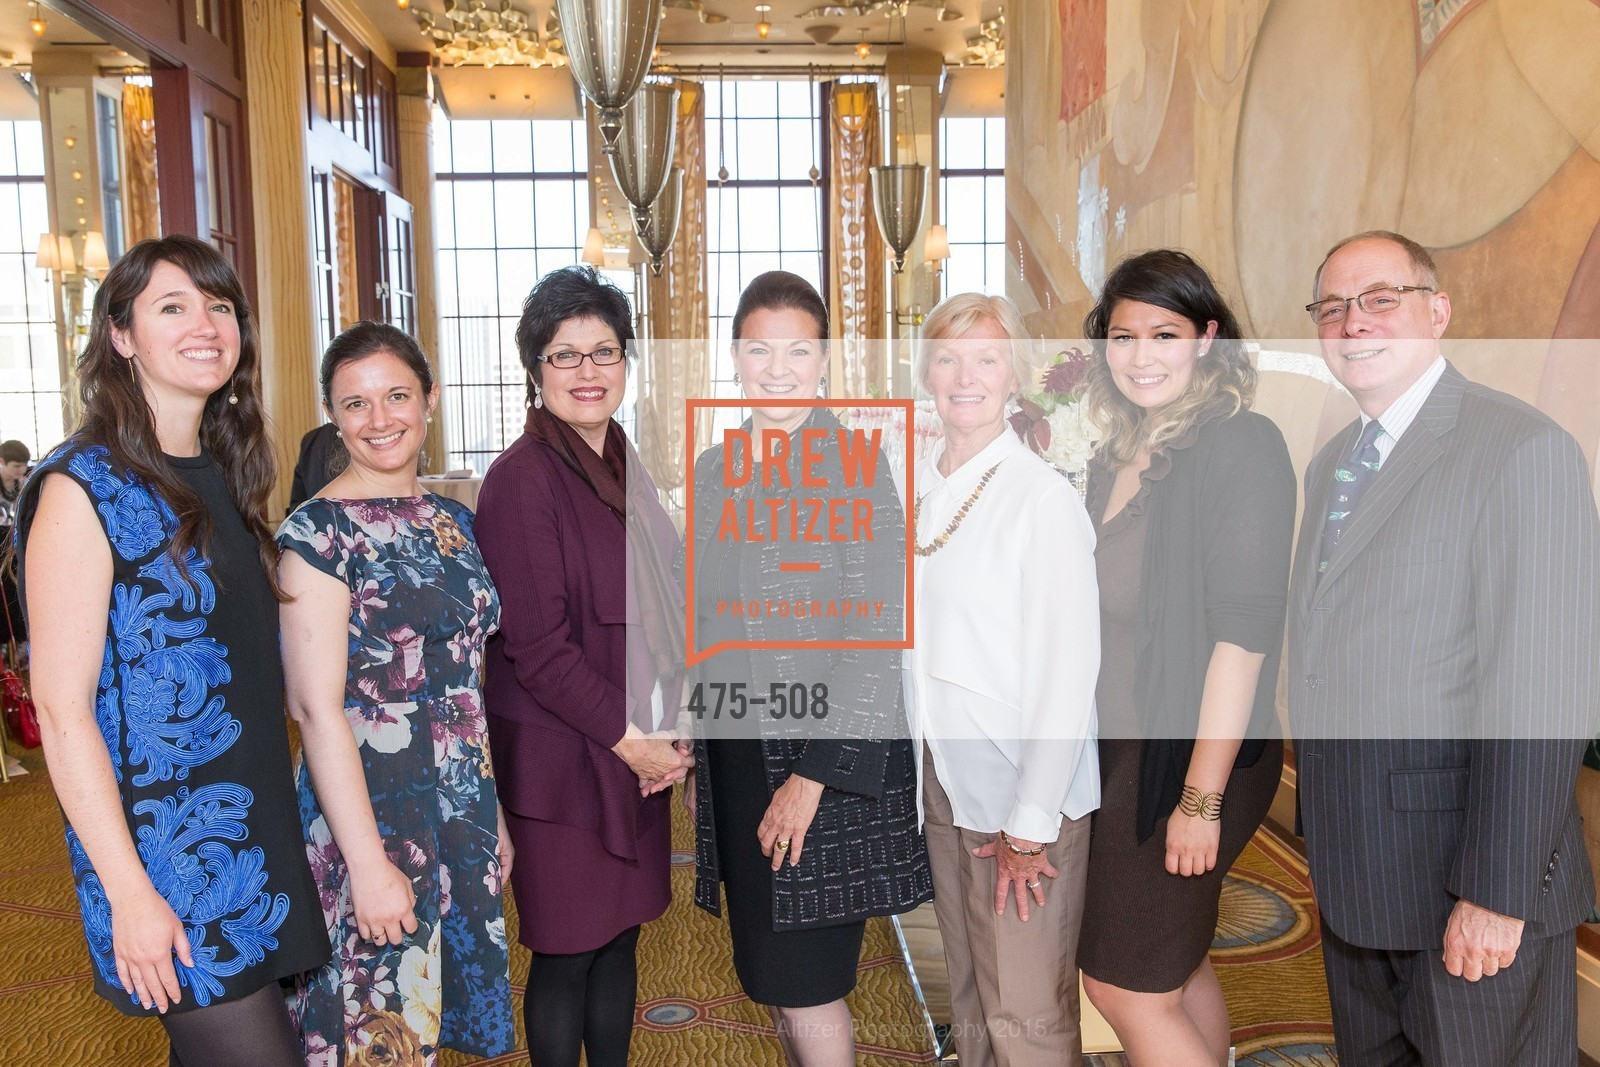 Megan McDonald, Kelly Dewees, Ellen Kerrigan, Susan Malott, Martha Chesley, Dianna Cavagnaro, Andrew Berger, San Francisco Opera Guild Annual Meeting & Luncheon, The Westin St. Francis Union Square. 335 Powell St, November 10th, 2015,Drew Altizer, Drew Altizer Photography, full-service event agency, private events, San Francisco photographer, photographer California